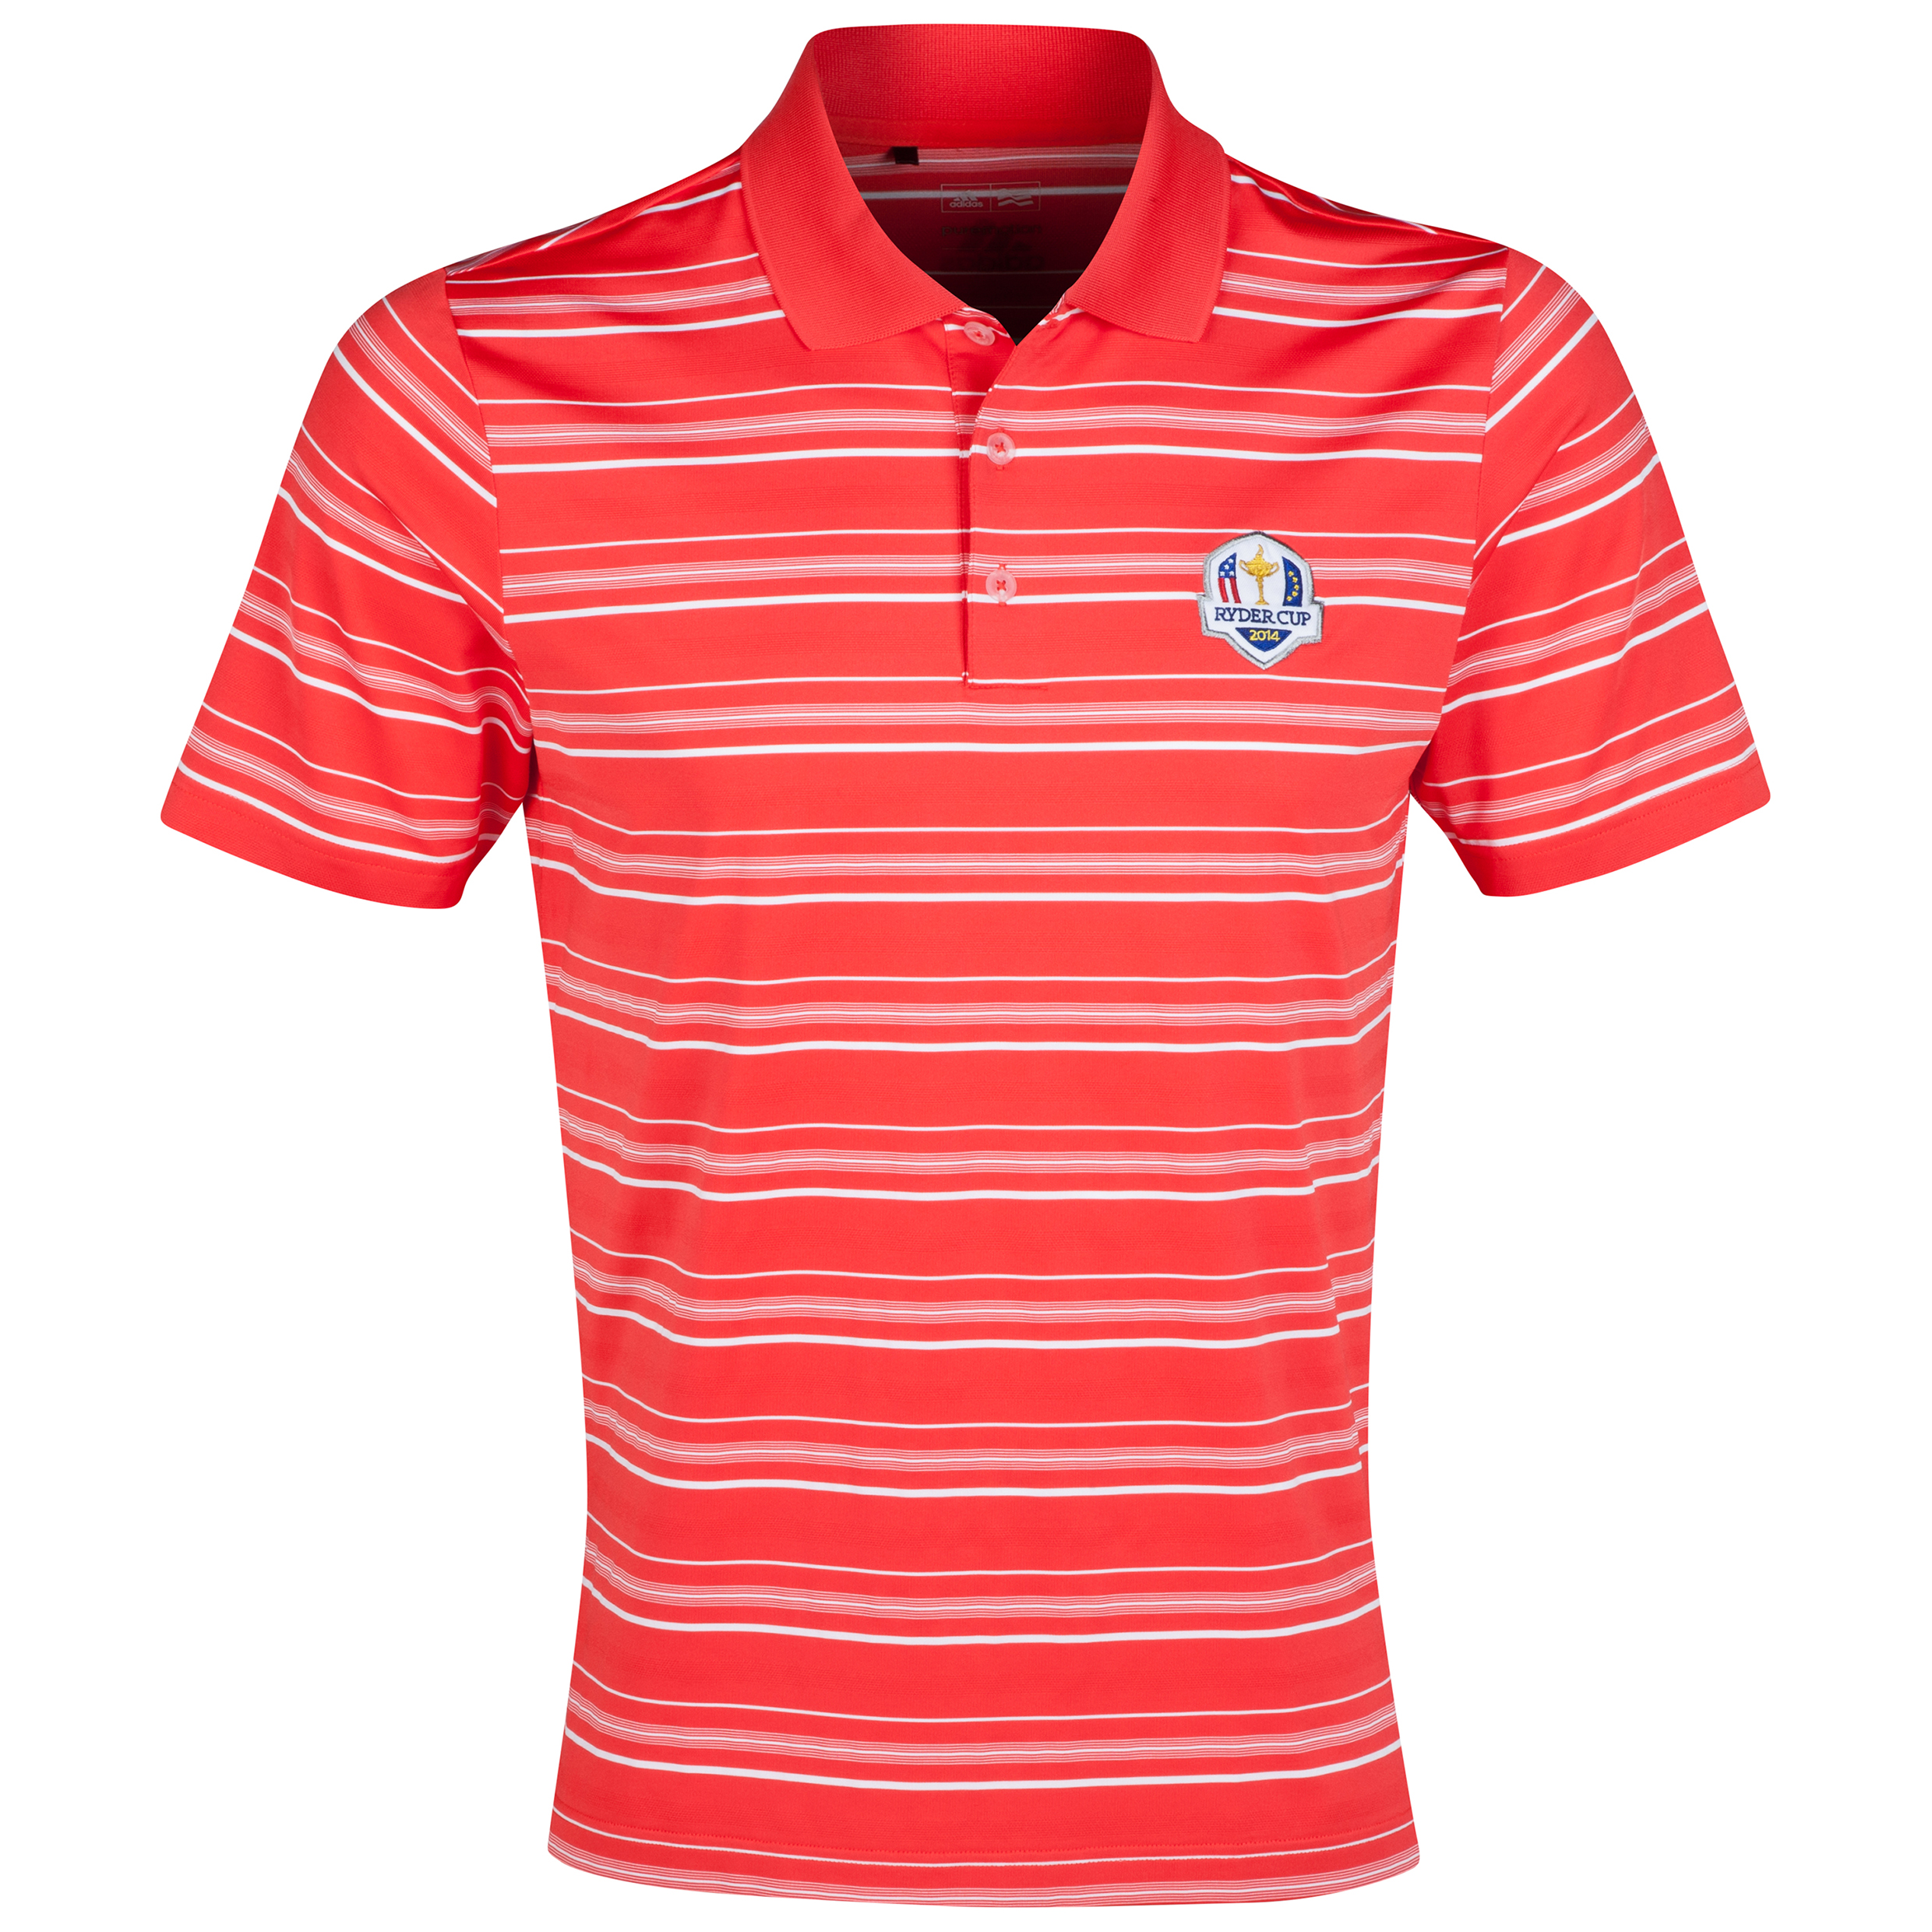 The 2014 Ryder Cup adidas ClimaLite 2-Colour Stripe Polo Red